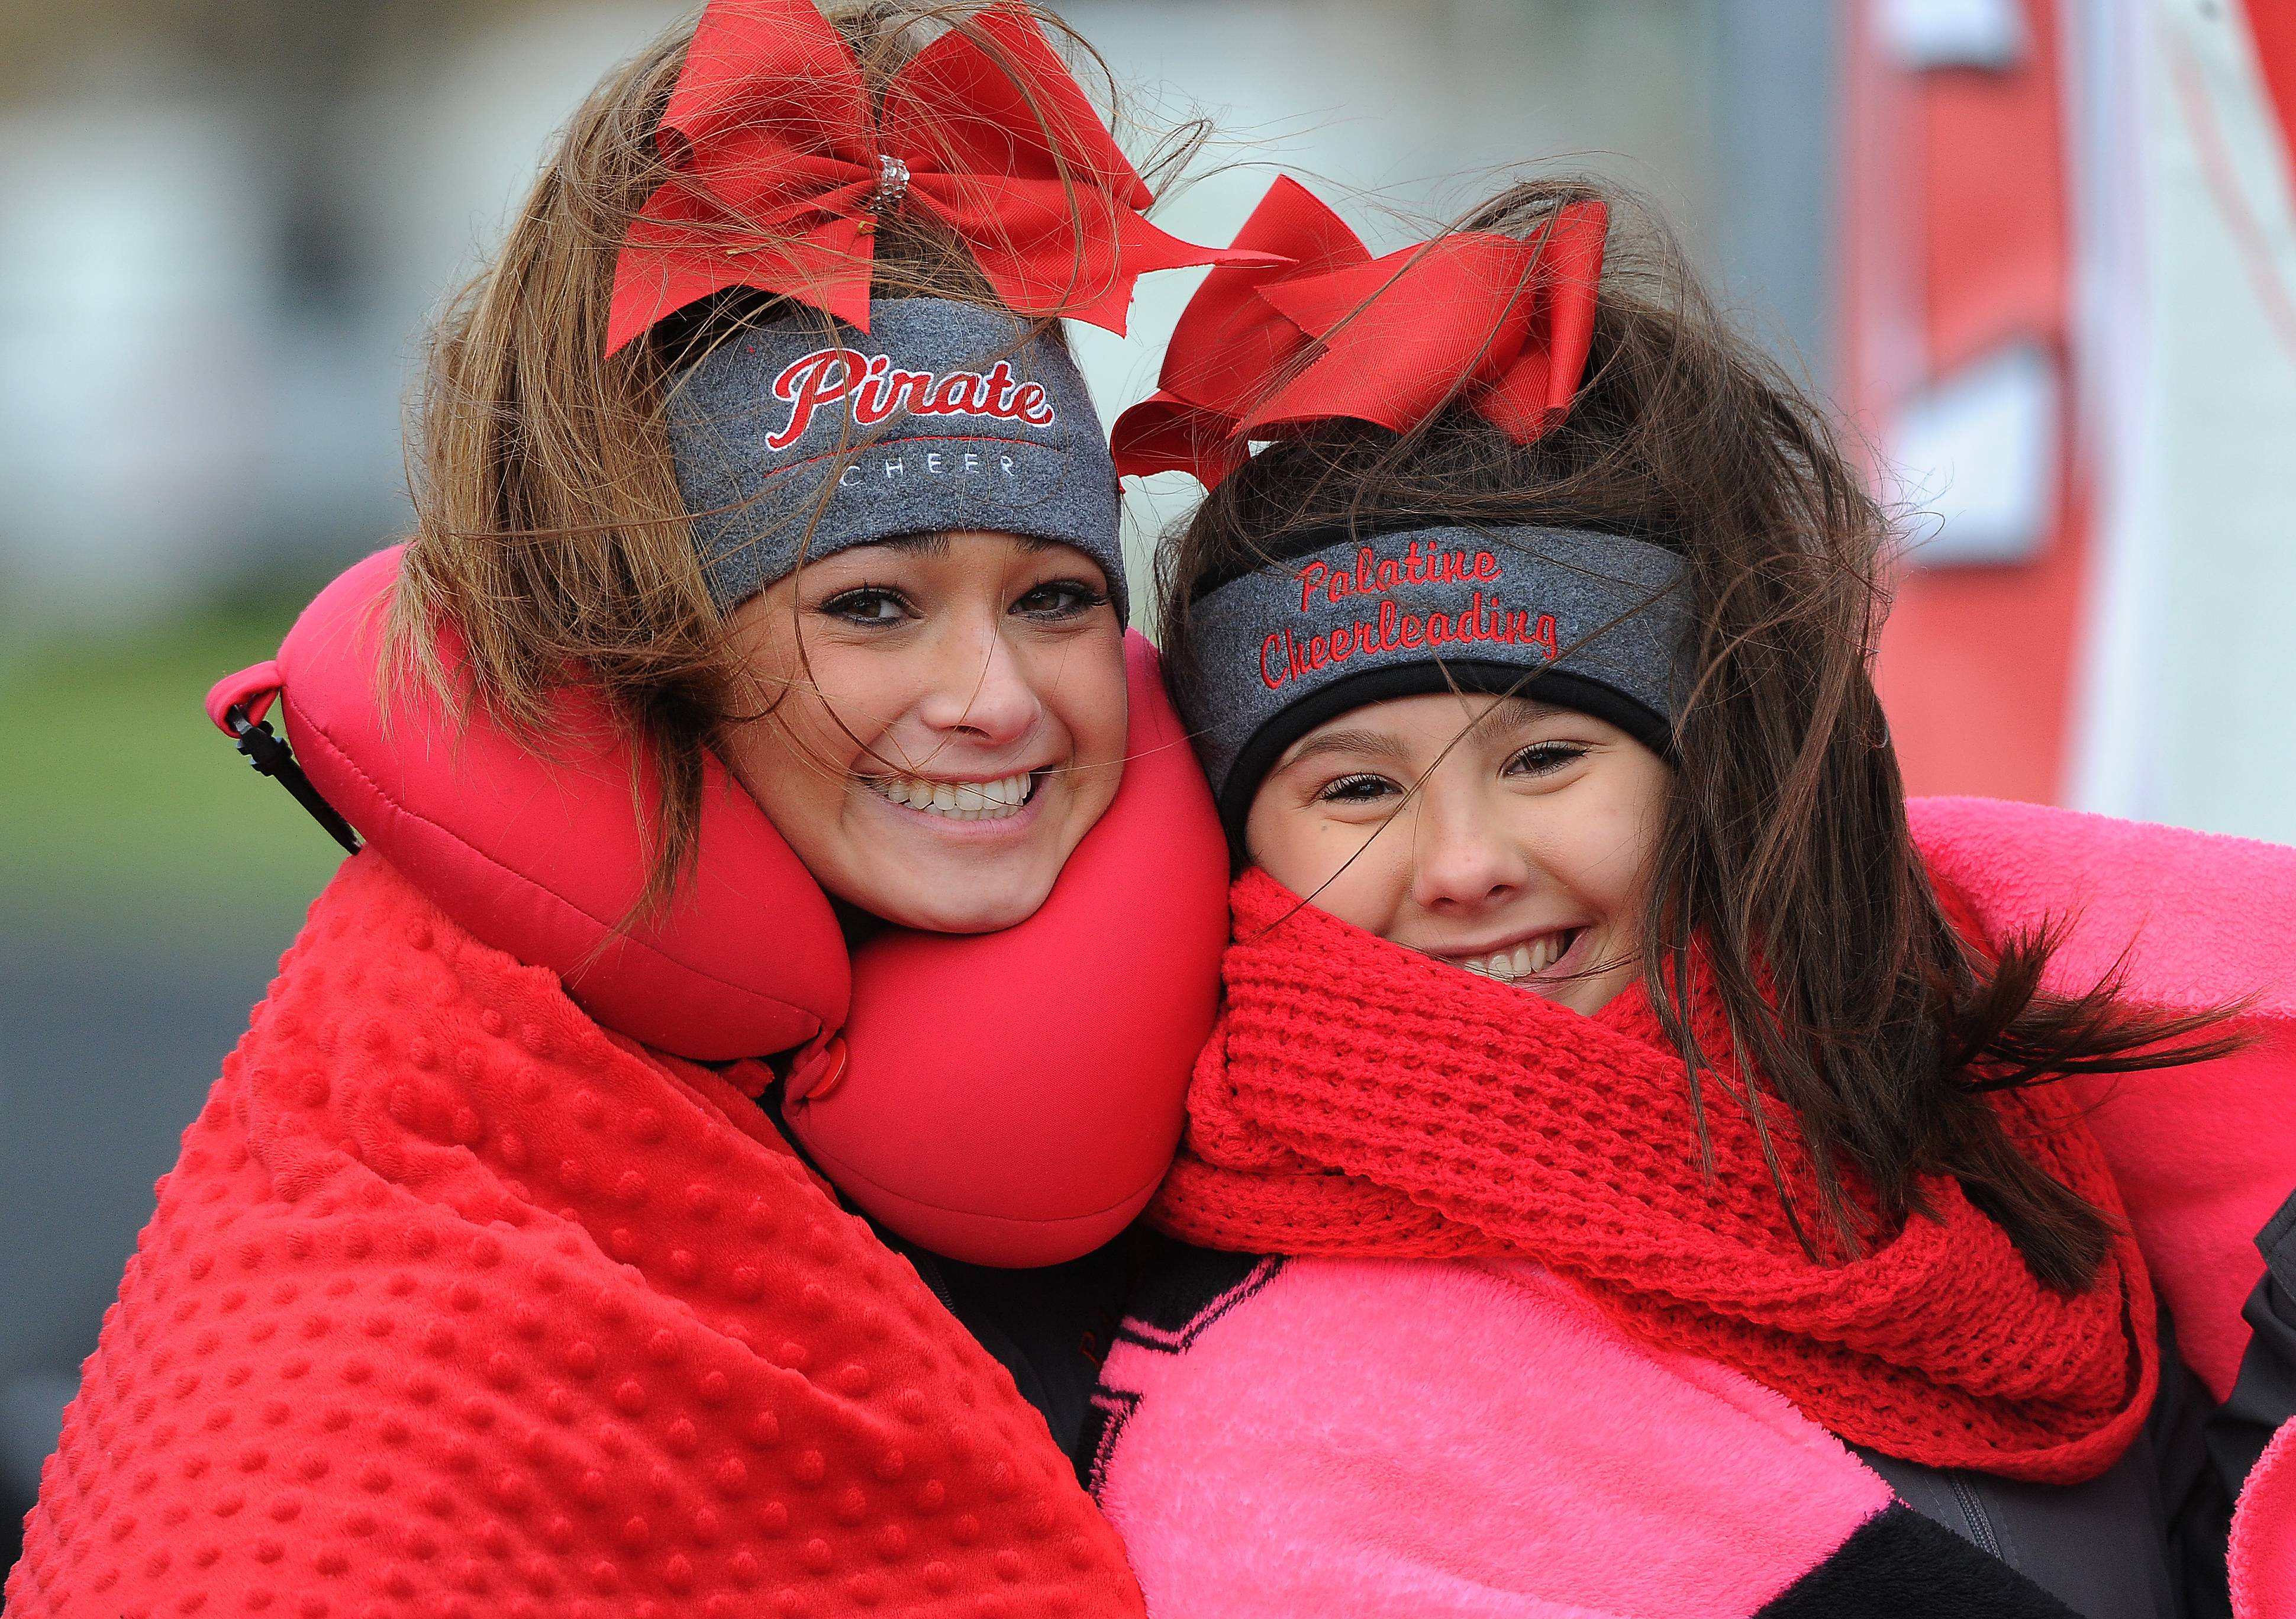 Palatine cheerleaders Haley Azpuru, 17, and Ally Christopher, 14, bundle up in layers before the game, unfortunately Palatine's football season ended with a loss to Maine South 24-7 in the Class 8A semifinals at Maine South High School on Saturday.